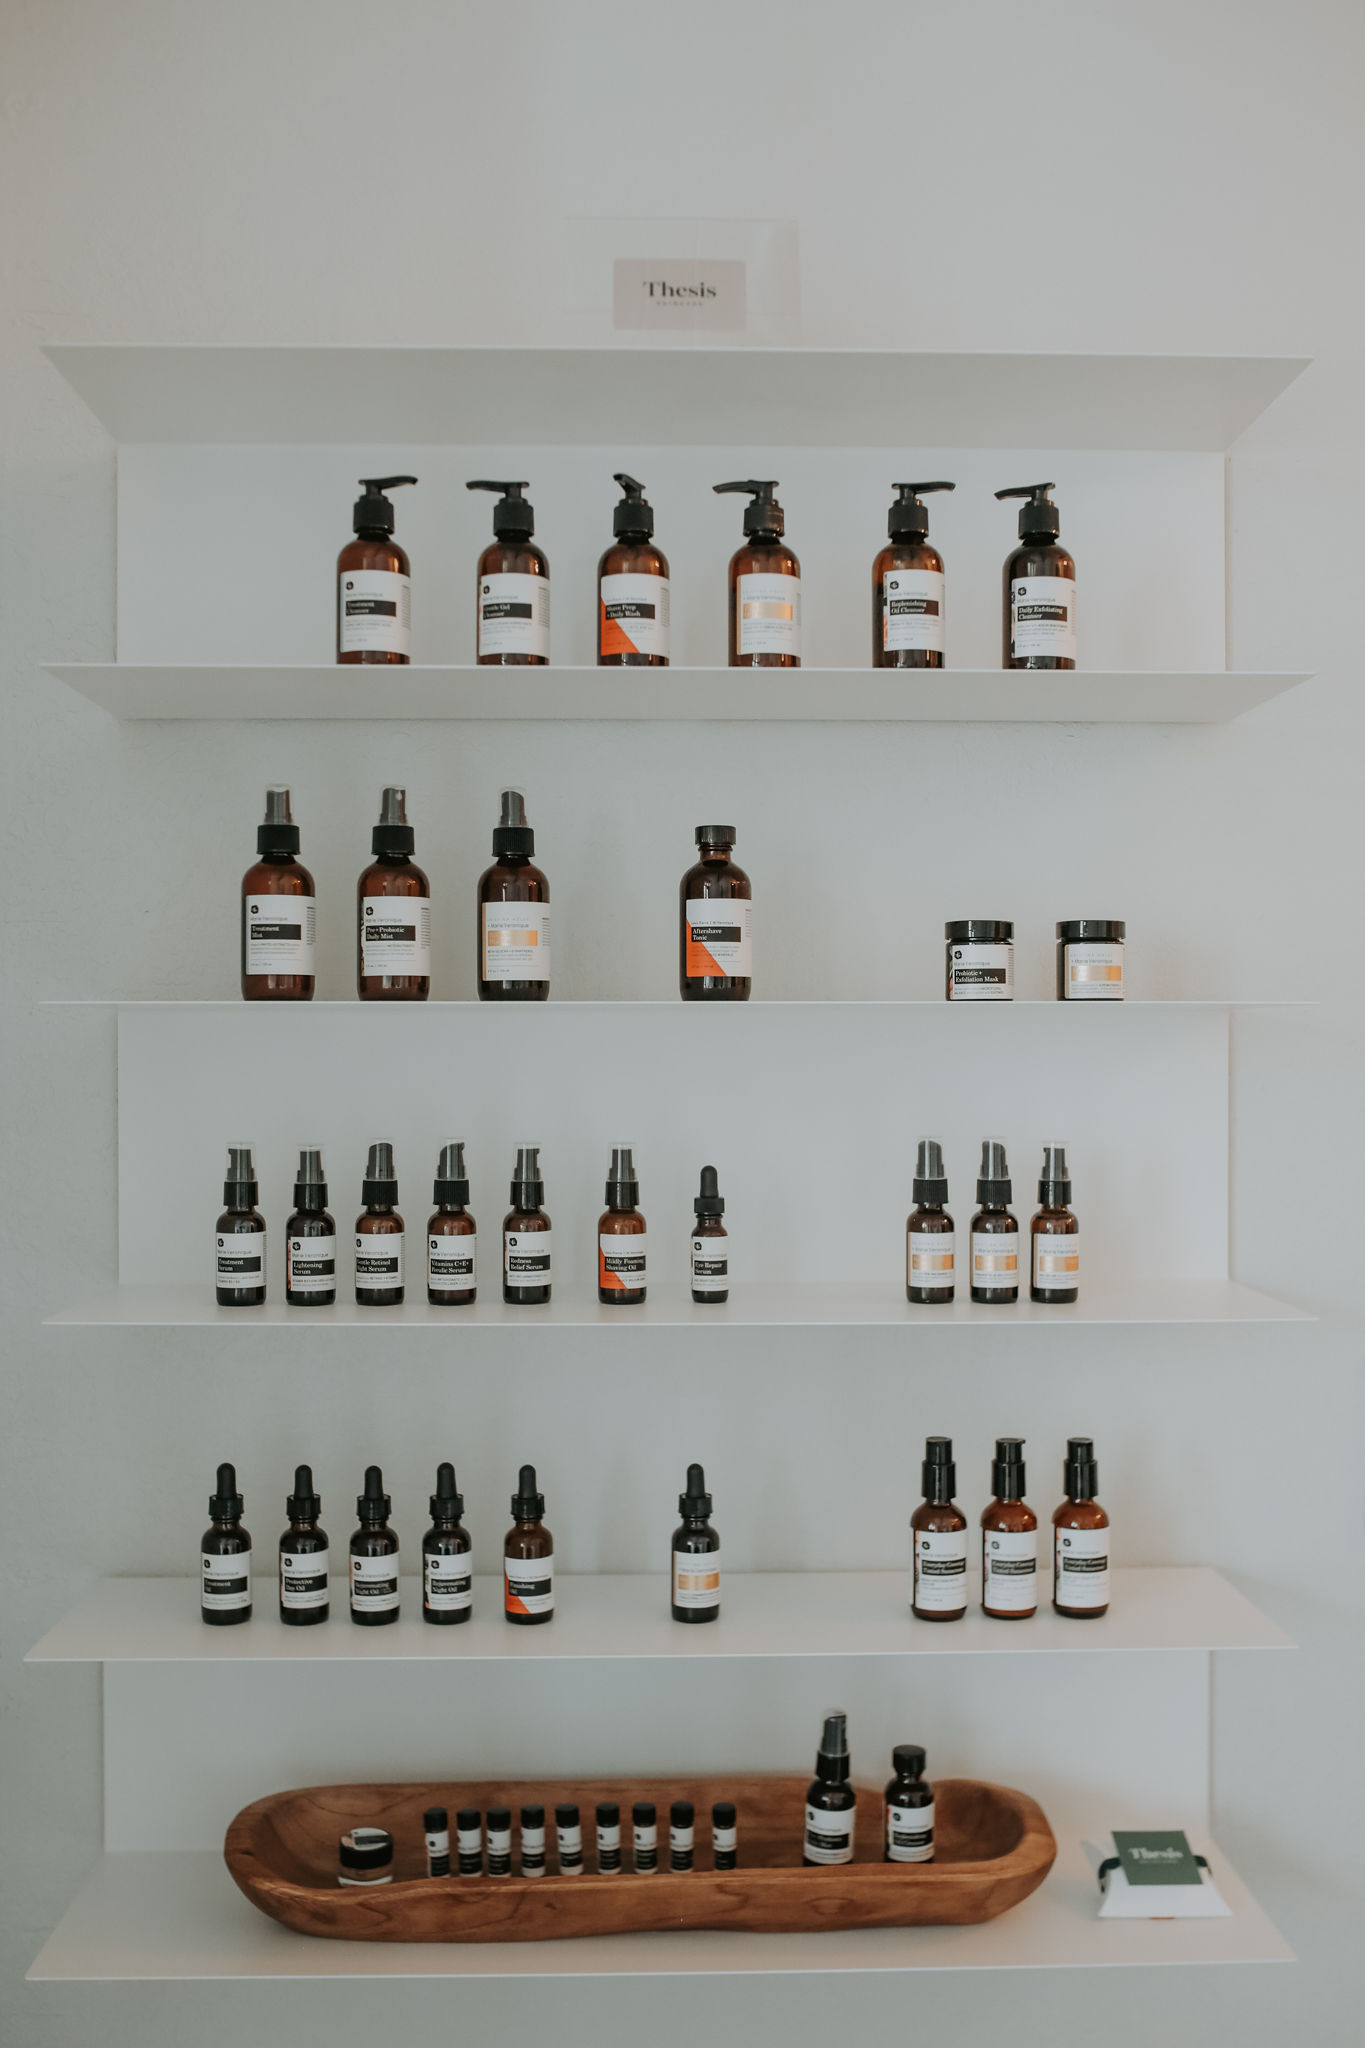 - When choosing the line that would be utilized at Thesis, a few things were driving factors; sustainability, results oriented and consciousness of true skin science. I needed a line packed with honest ingredients that brought real health to the skin. Marie Veronique approaches skin care in a cutting-edge way by stepping back and respecting our bodies largest organ, to meet its needs and not try to alter it.Out of Berkeley, CA working in small batch production, this line truly is unique. There are options that help ranging from barrier disfunction, acne, rosacea and through all this anti-aging is a beneficial by product (whoop whoop!).I am beyond excited to bring this product to Montana!*pic by our friend Abigail Maki Photography